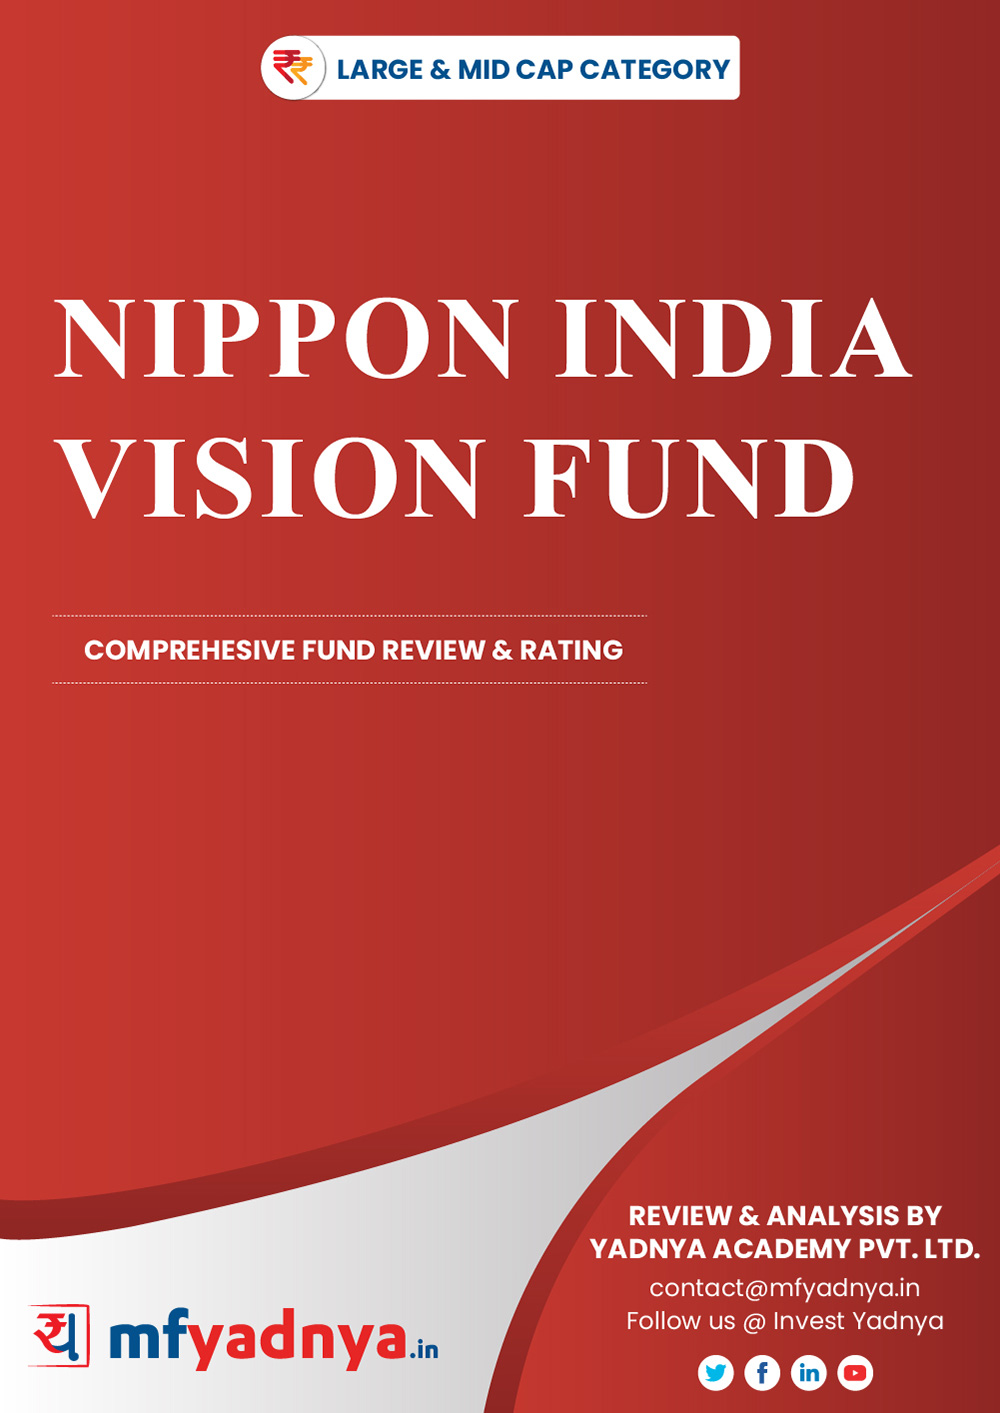 Large & Midcap Category Review - 'Nippon India Vision Fund'. Most Comprehensive and detailed MF review based on Yadnya's proprietary methodology of Green, Yellow & Red Star. Detailed Analysis & Review based on Nov 30th, 2019 data.